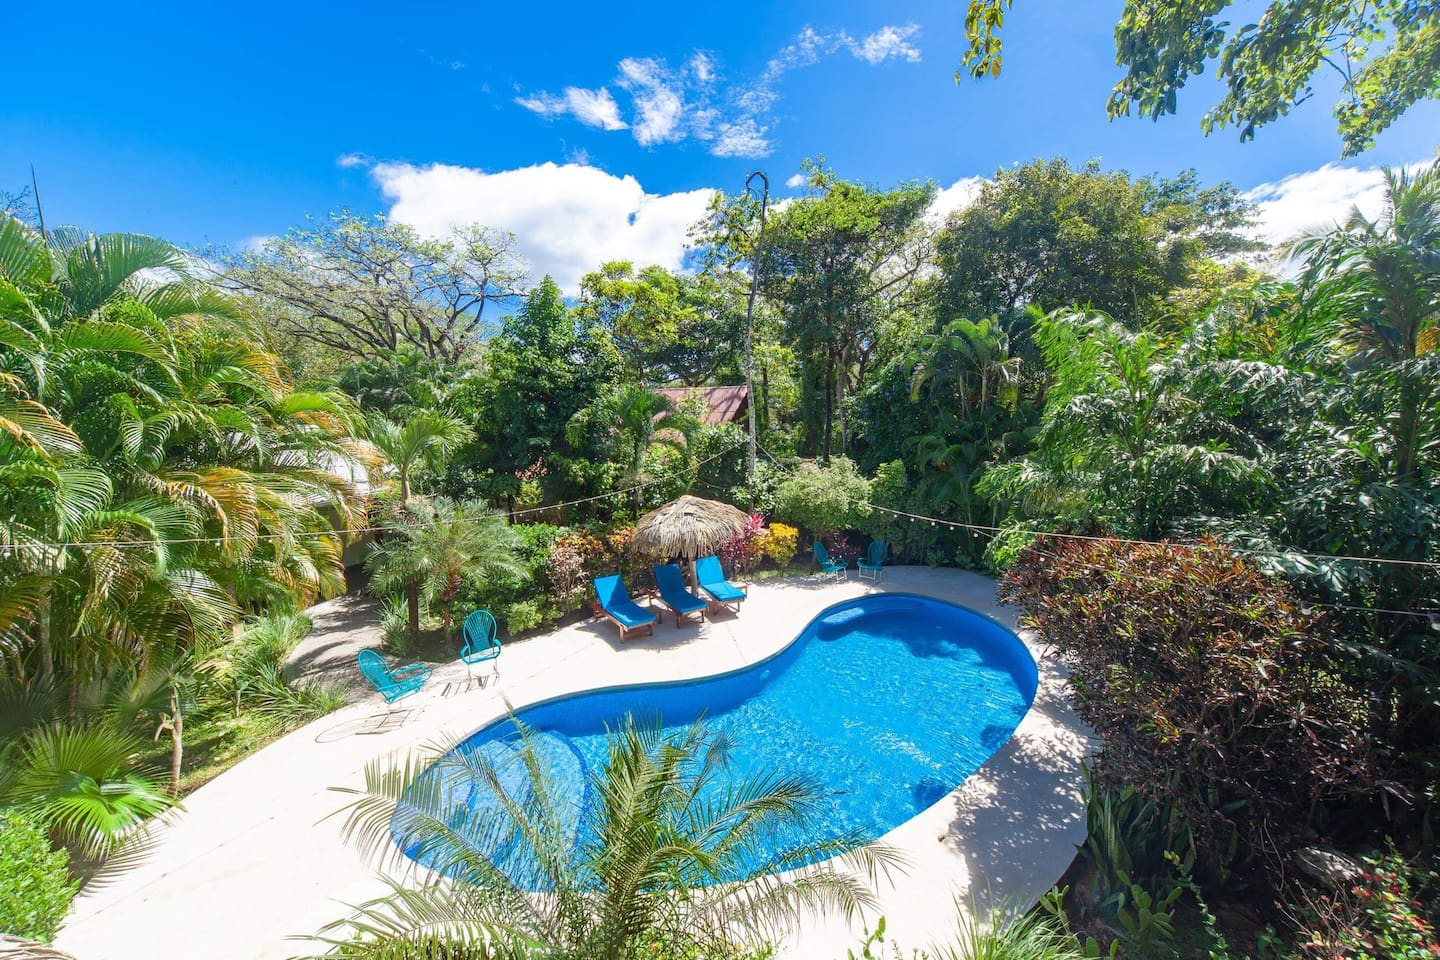 pool view from top of rancho and tropical garden around - yoga holiday costa rica